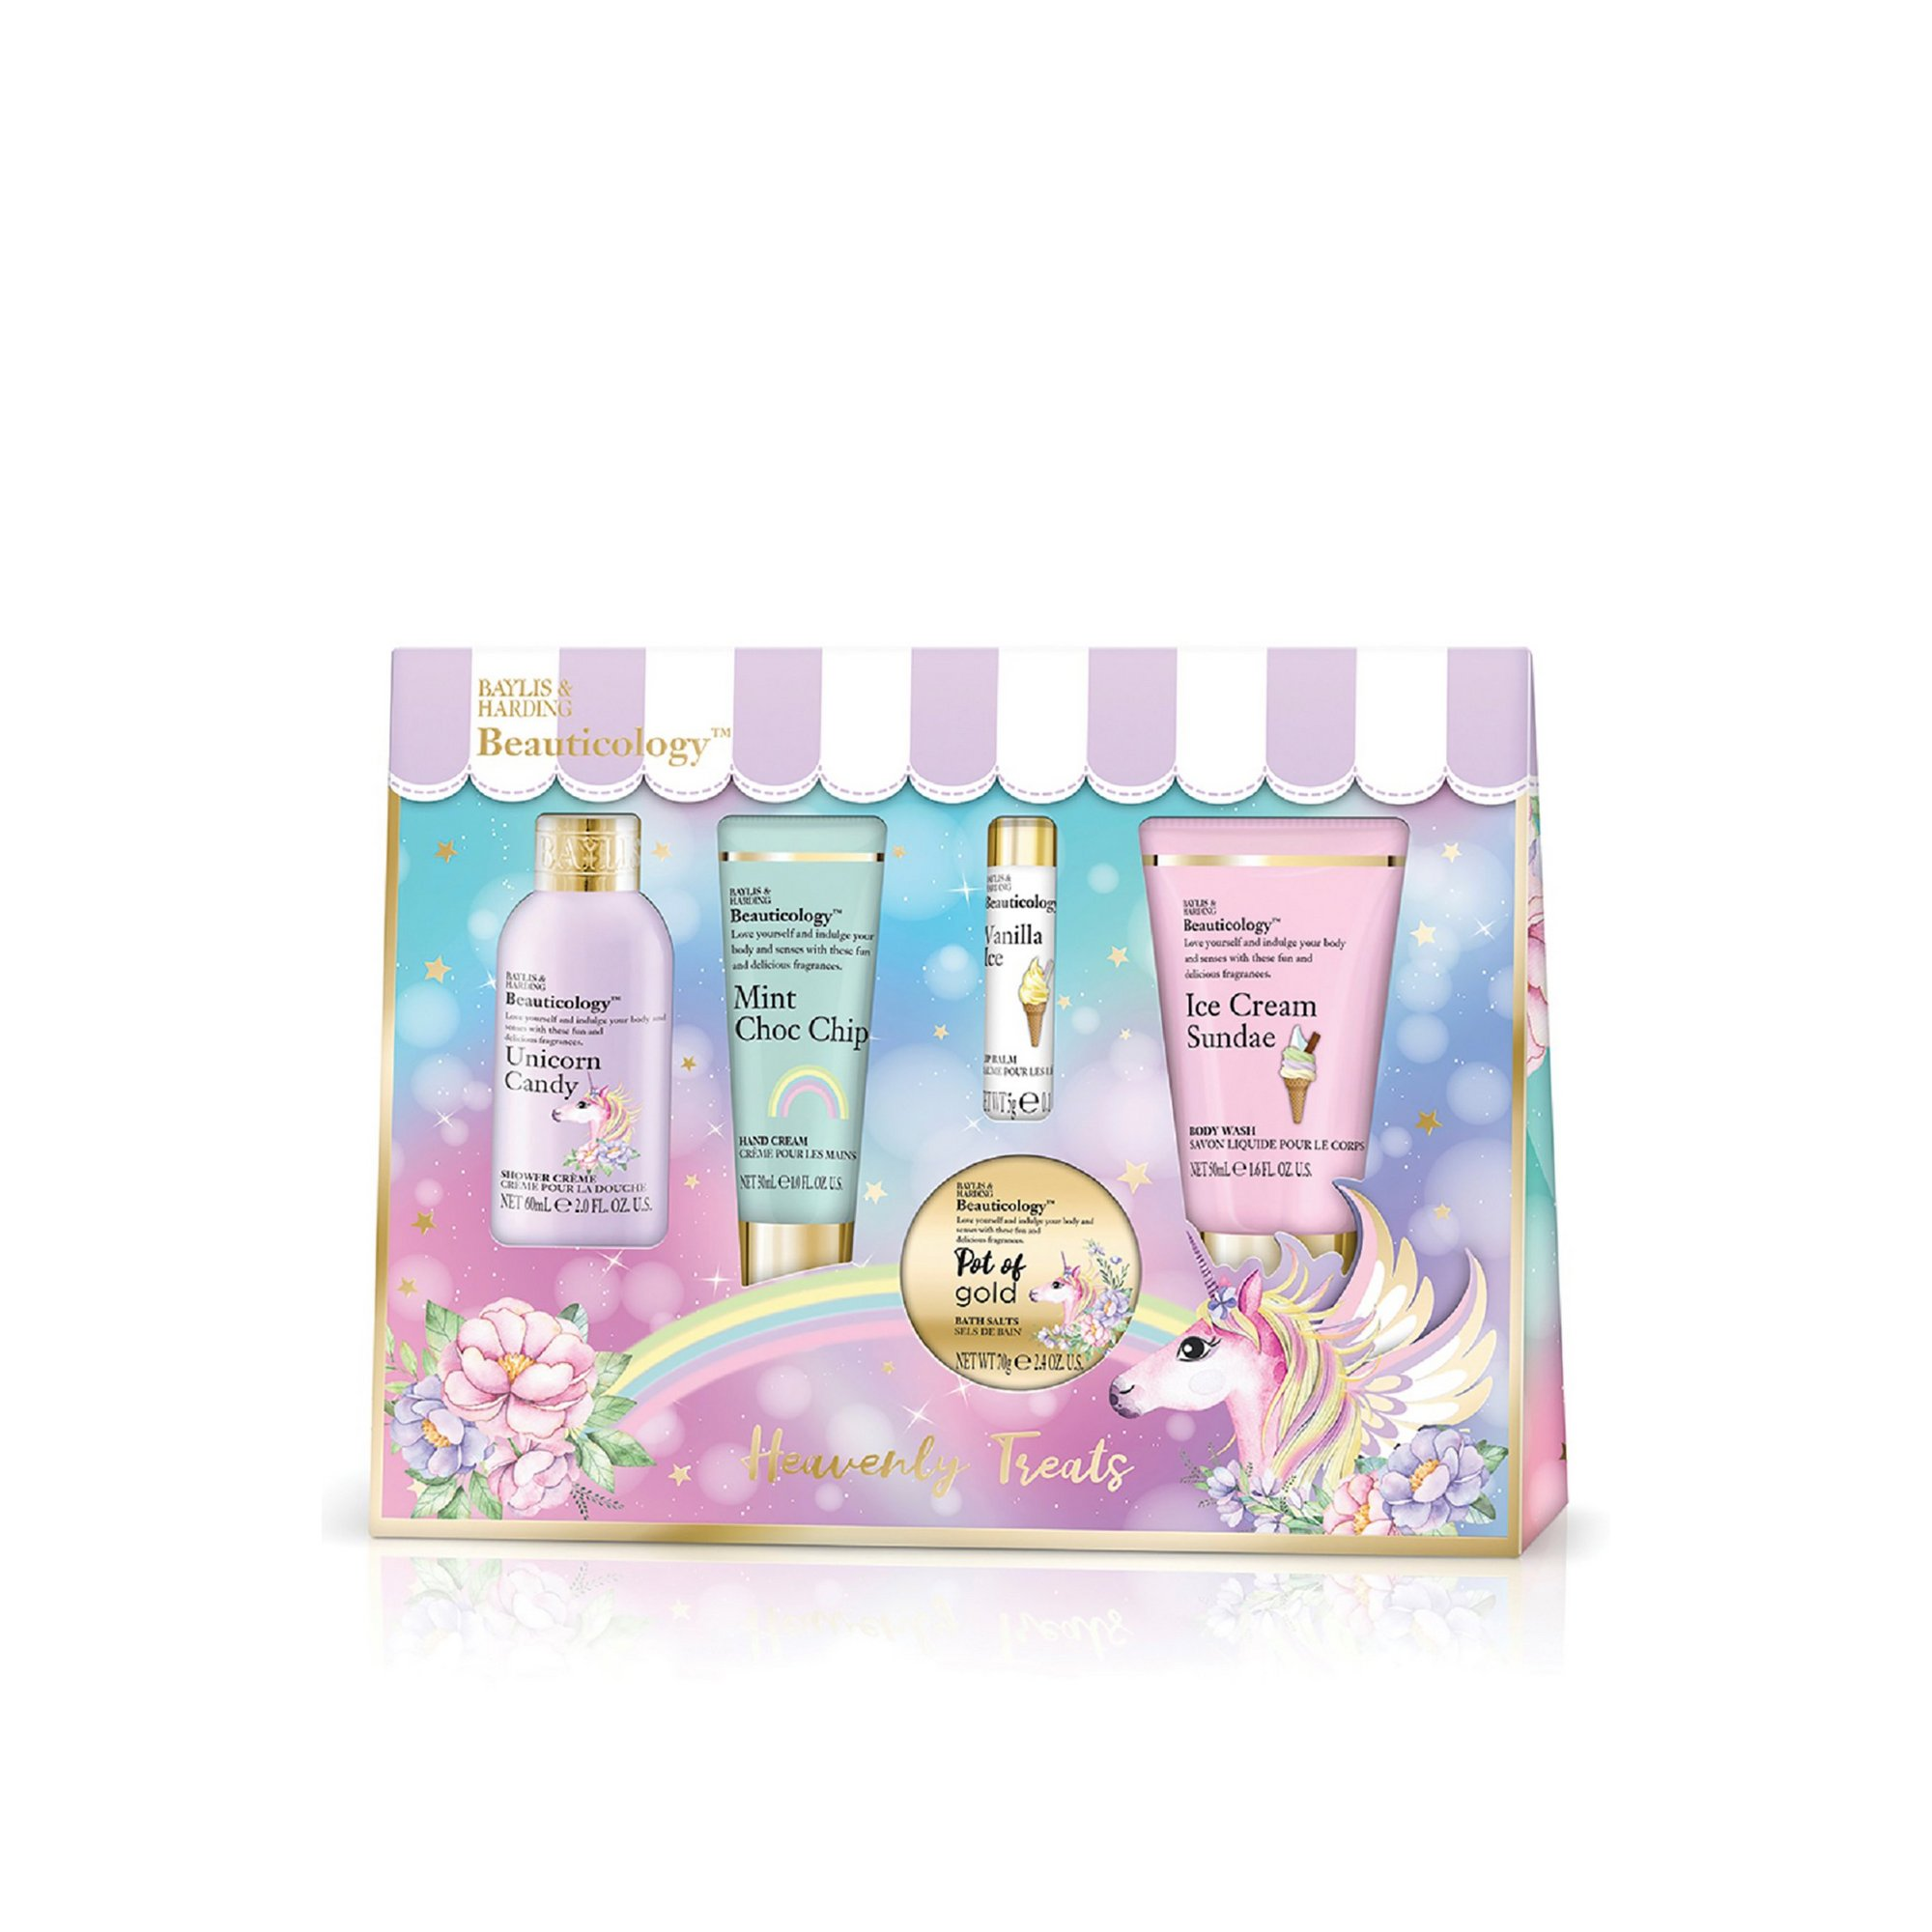 Image of Baylis and Harding Beauticology Unicorn Set